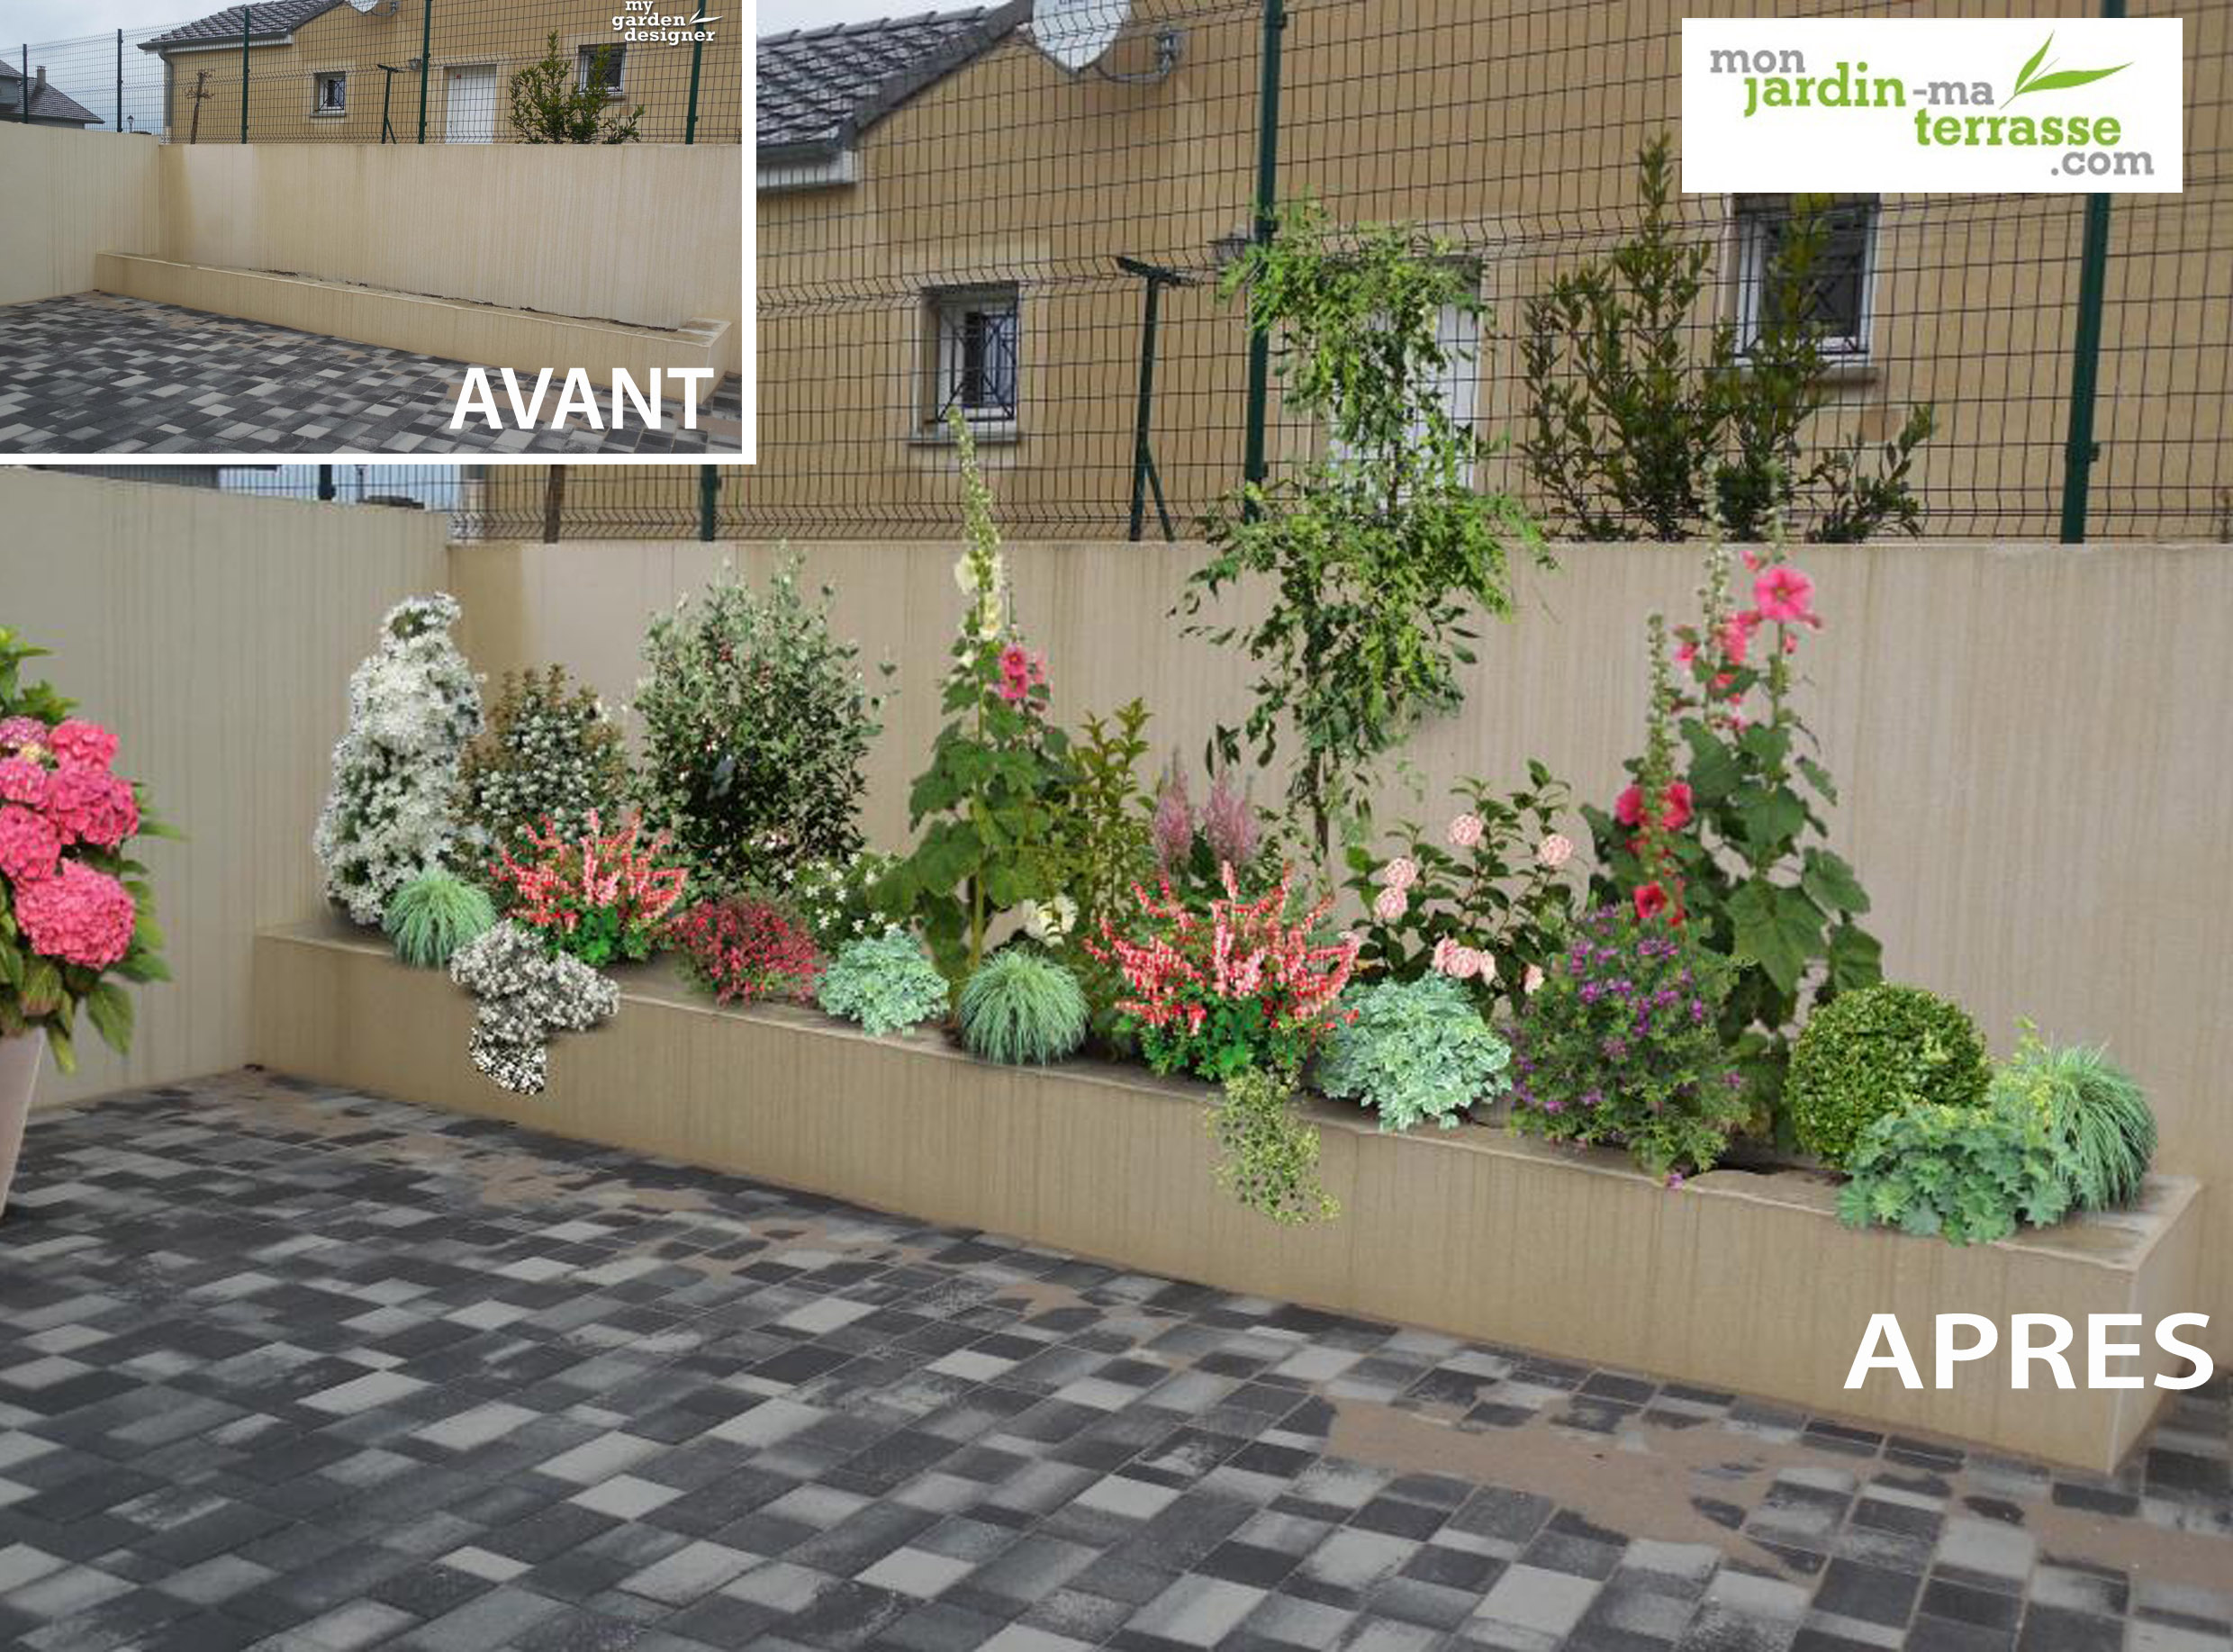 Amenagement jardiniere terrasse monjardin for Site amenagement jardin